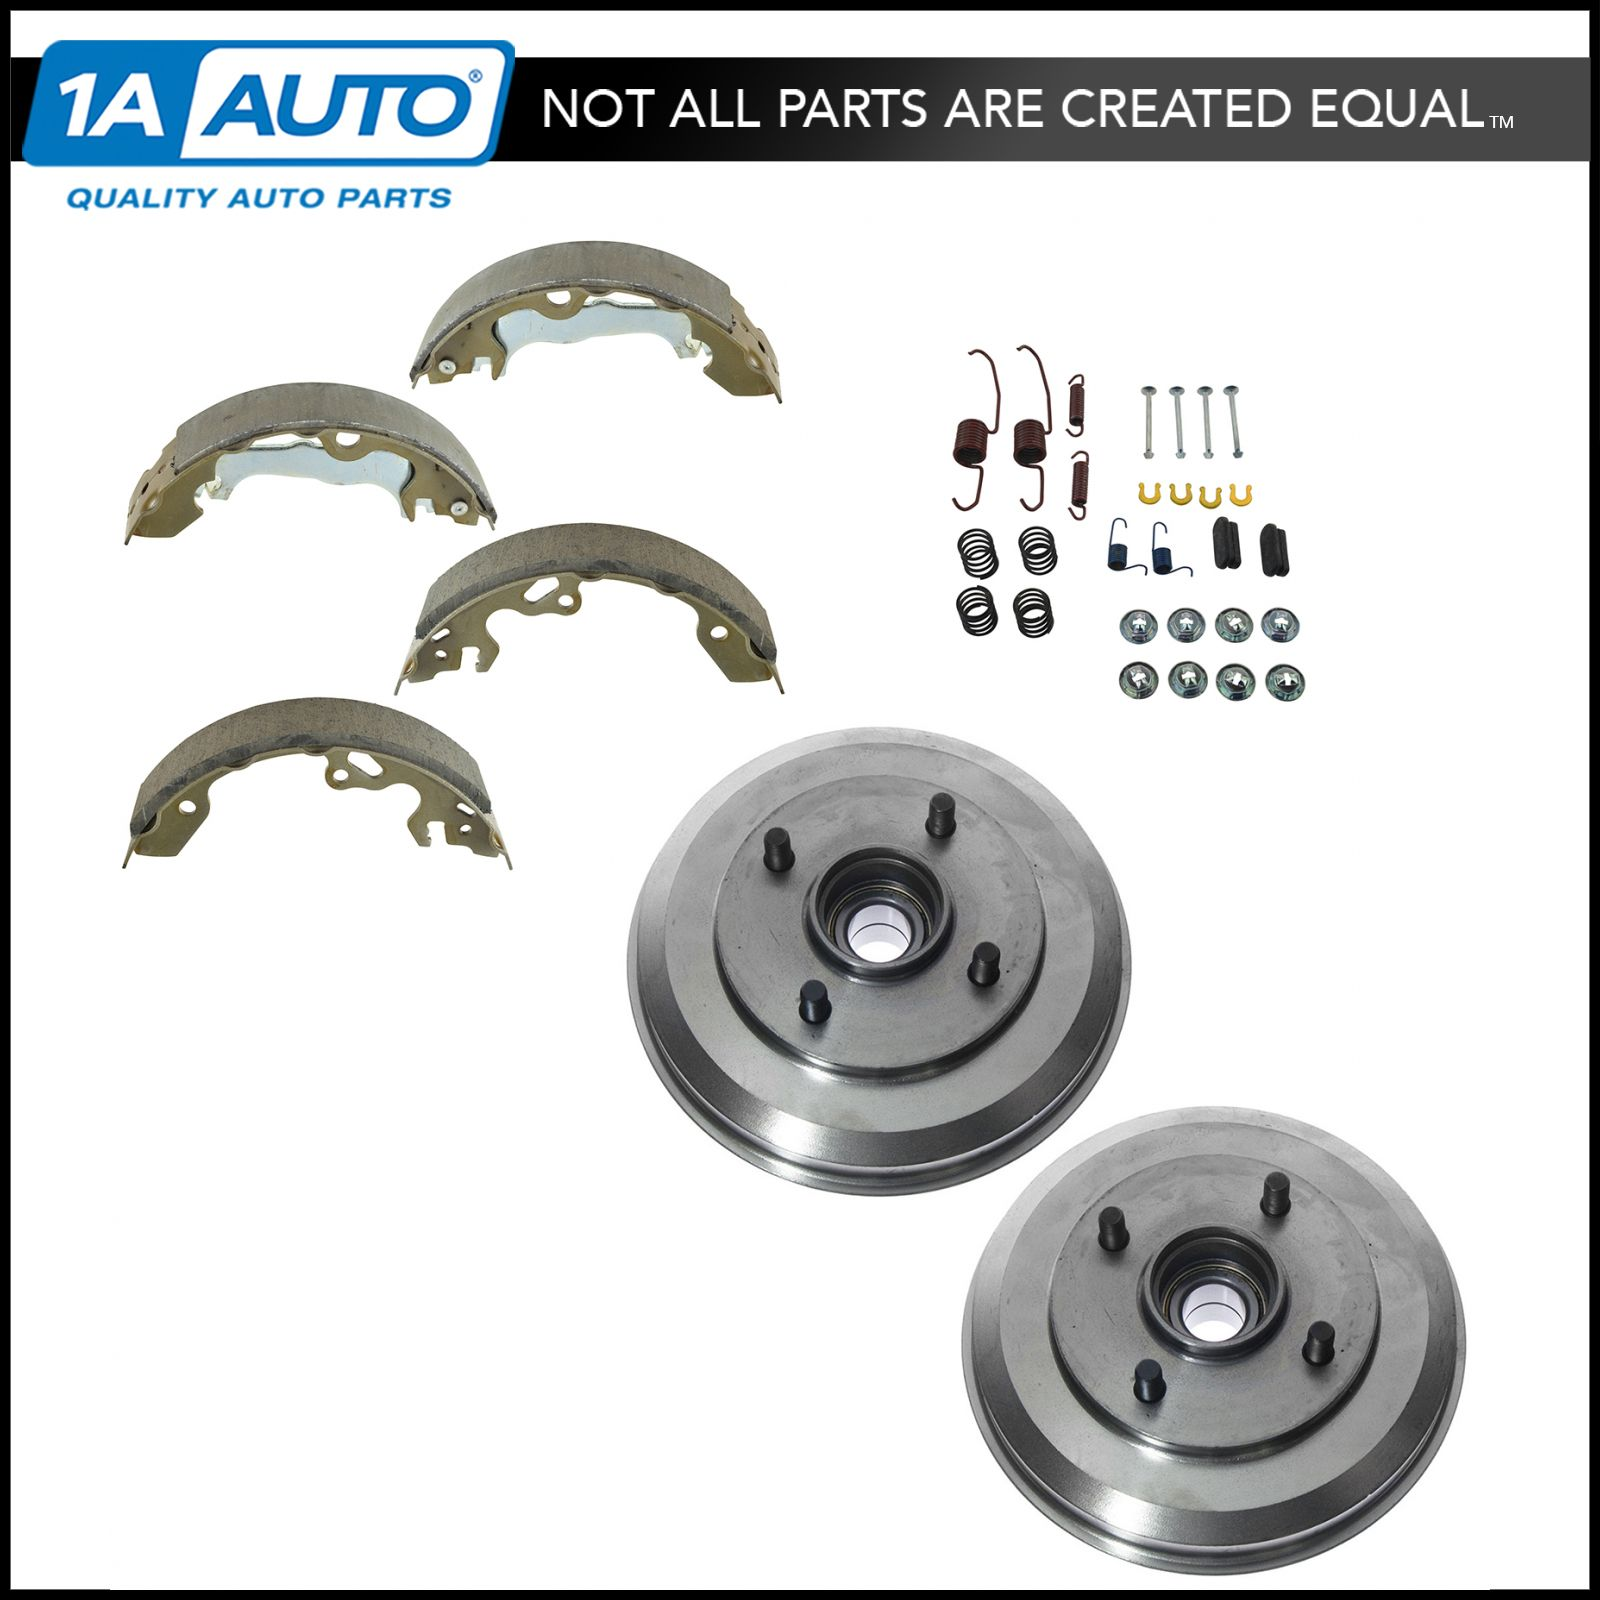 Rear Drum Brake Hardware Kit Set LH RH for Ford Mercury Hyundai New